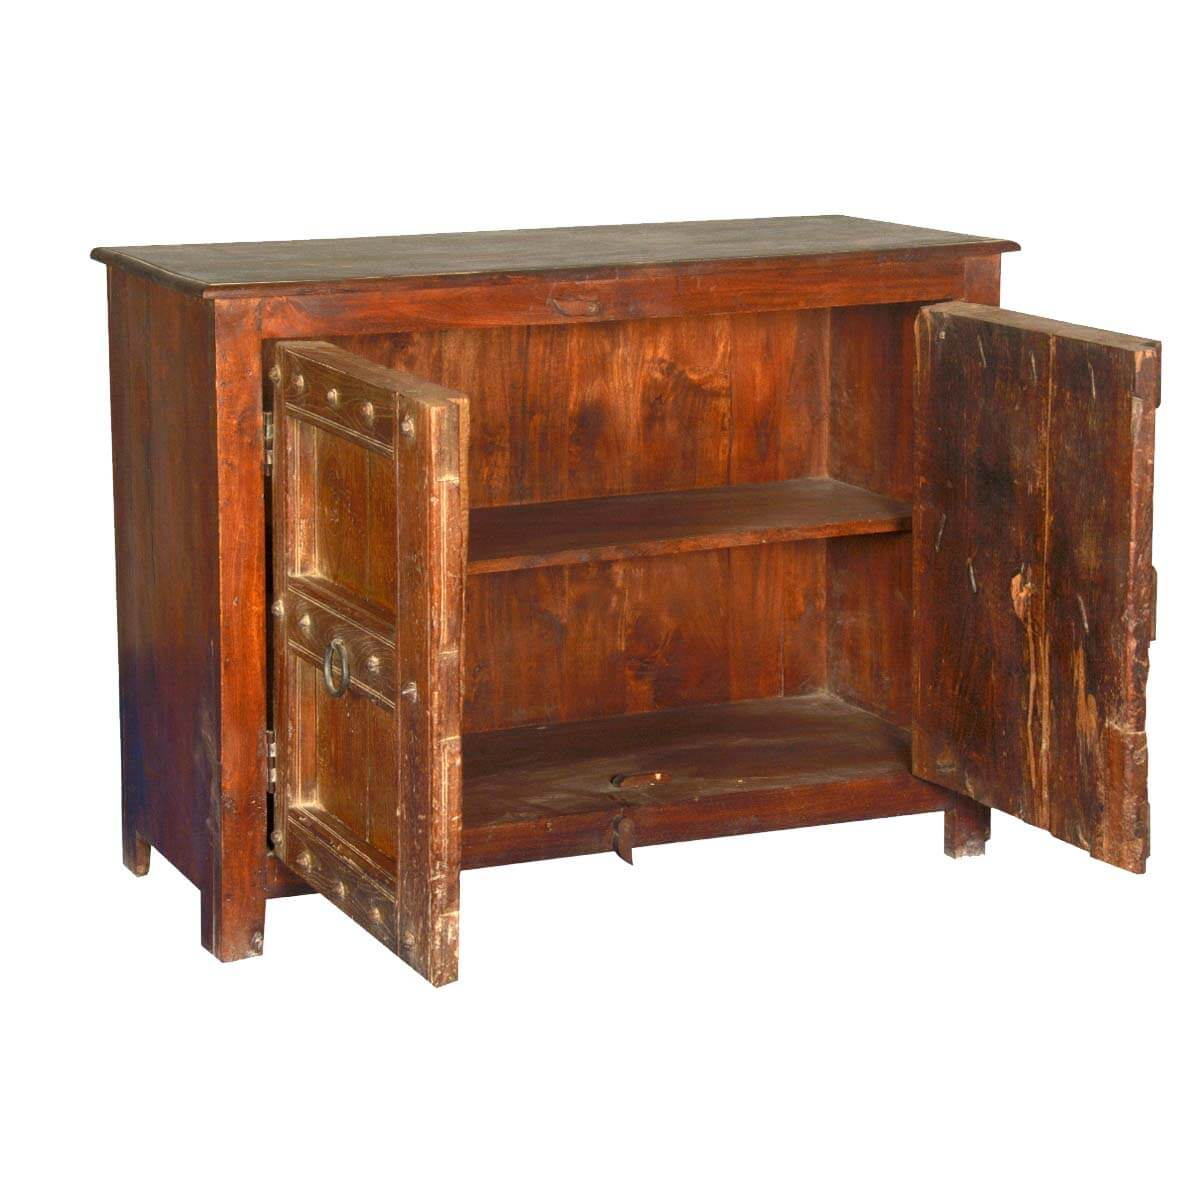 Camelot Gothic Reclaimed Wood Console Buffet Storage Cabinet : 53062 from sierralivingconcepts.com size 1200 x 1200 jpeg 114kB